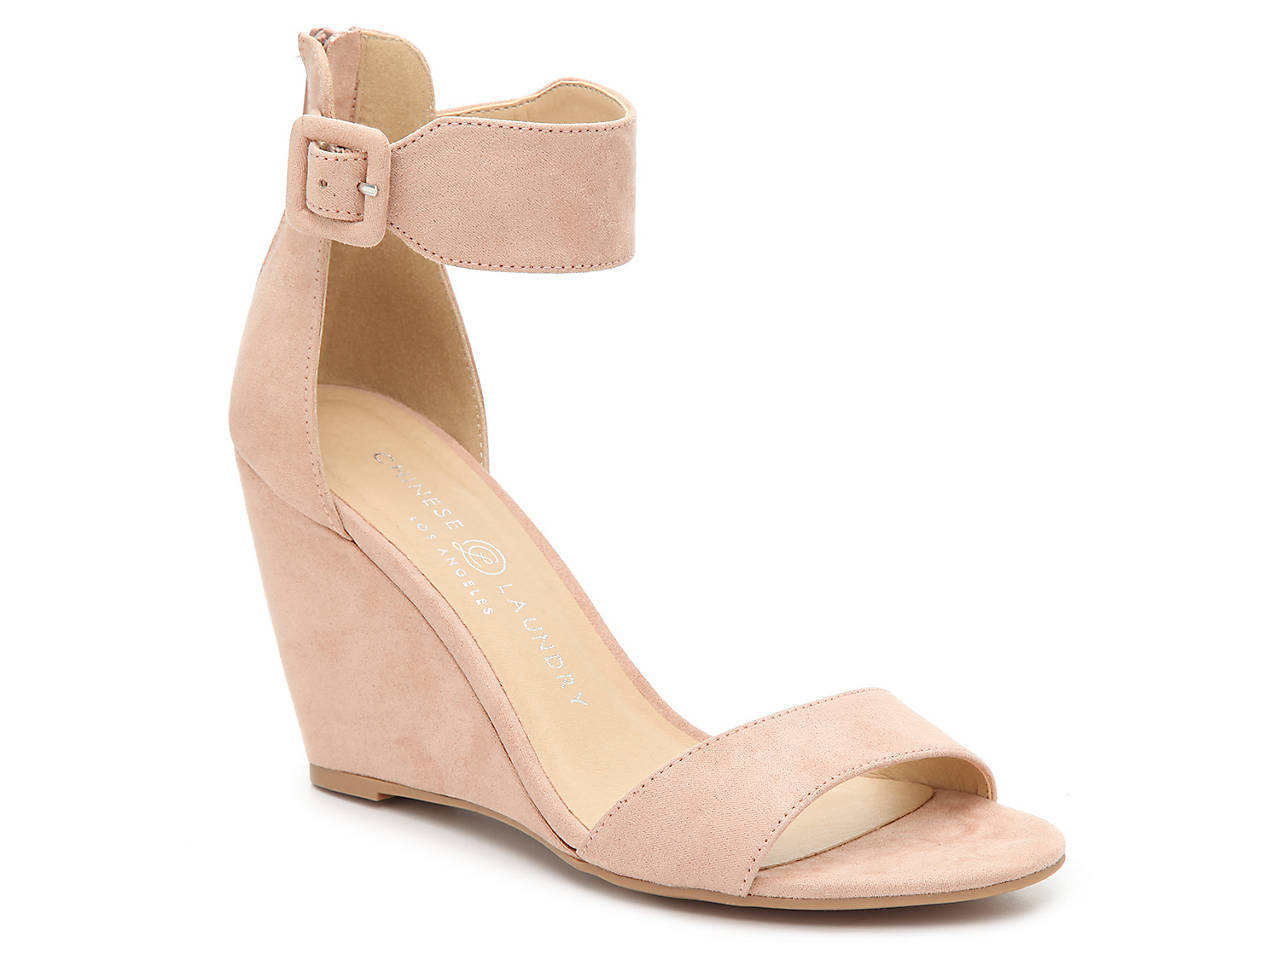 ccdebbf682b Chinese Laundry Caring Wedge Sandal Women s Shoes